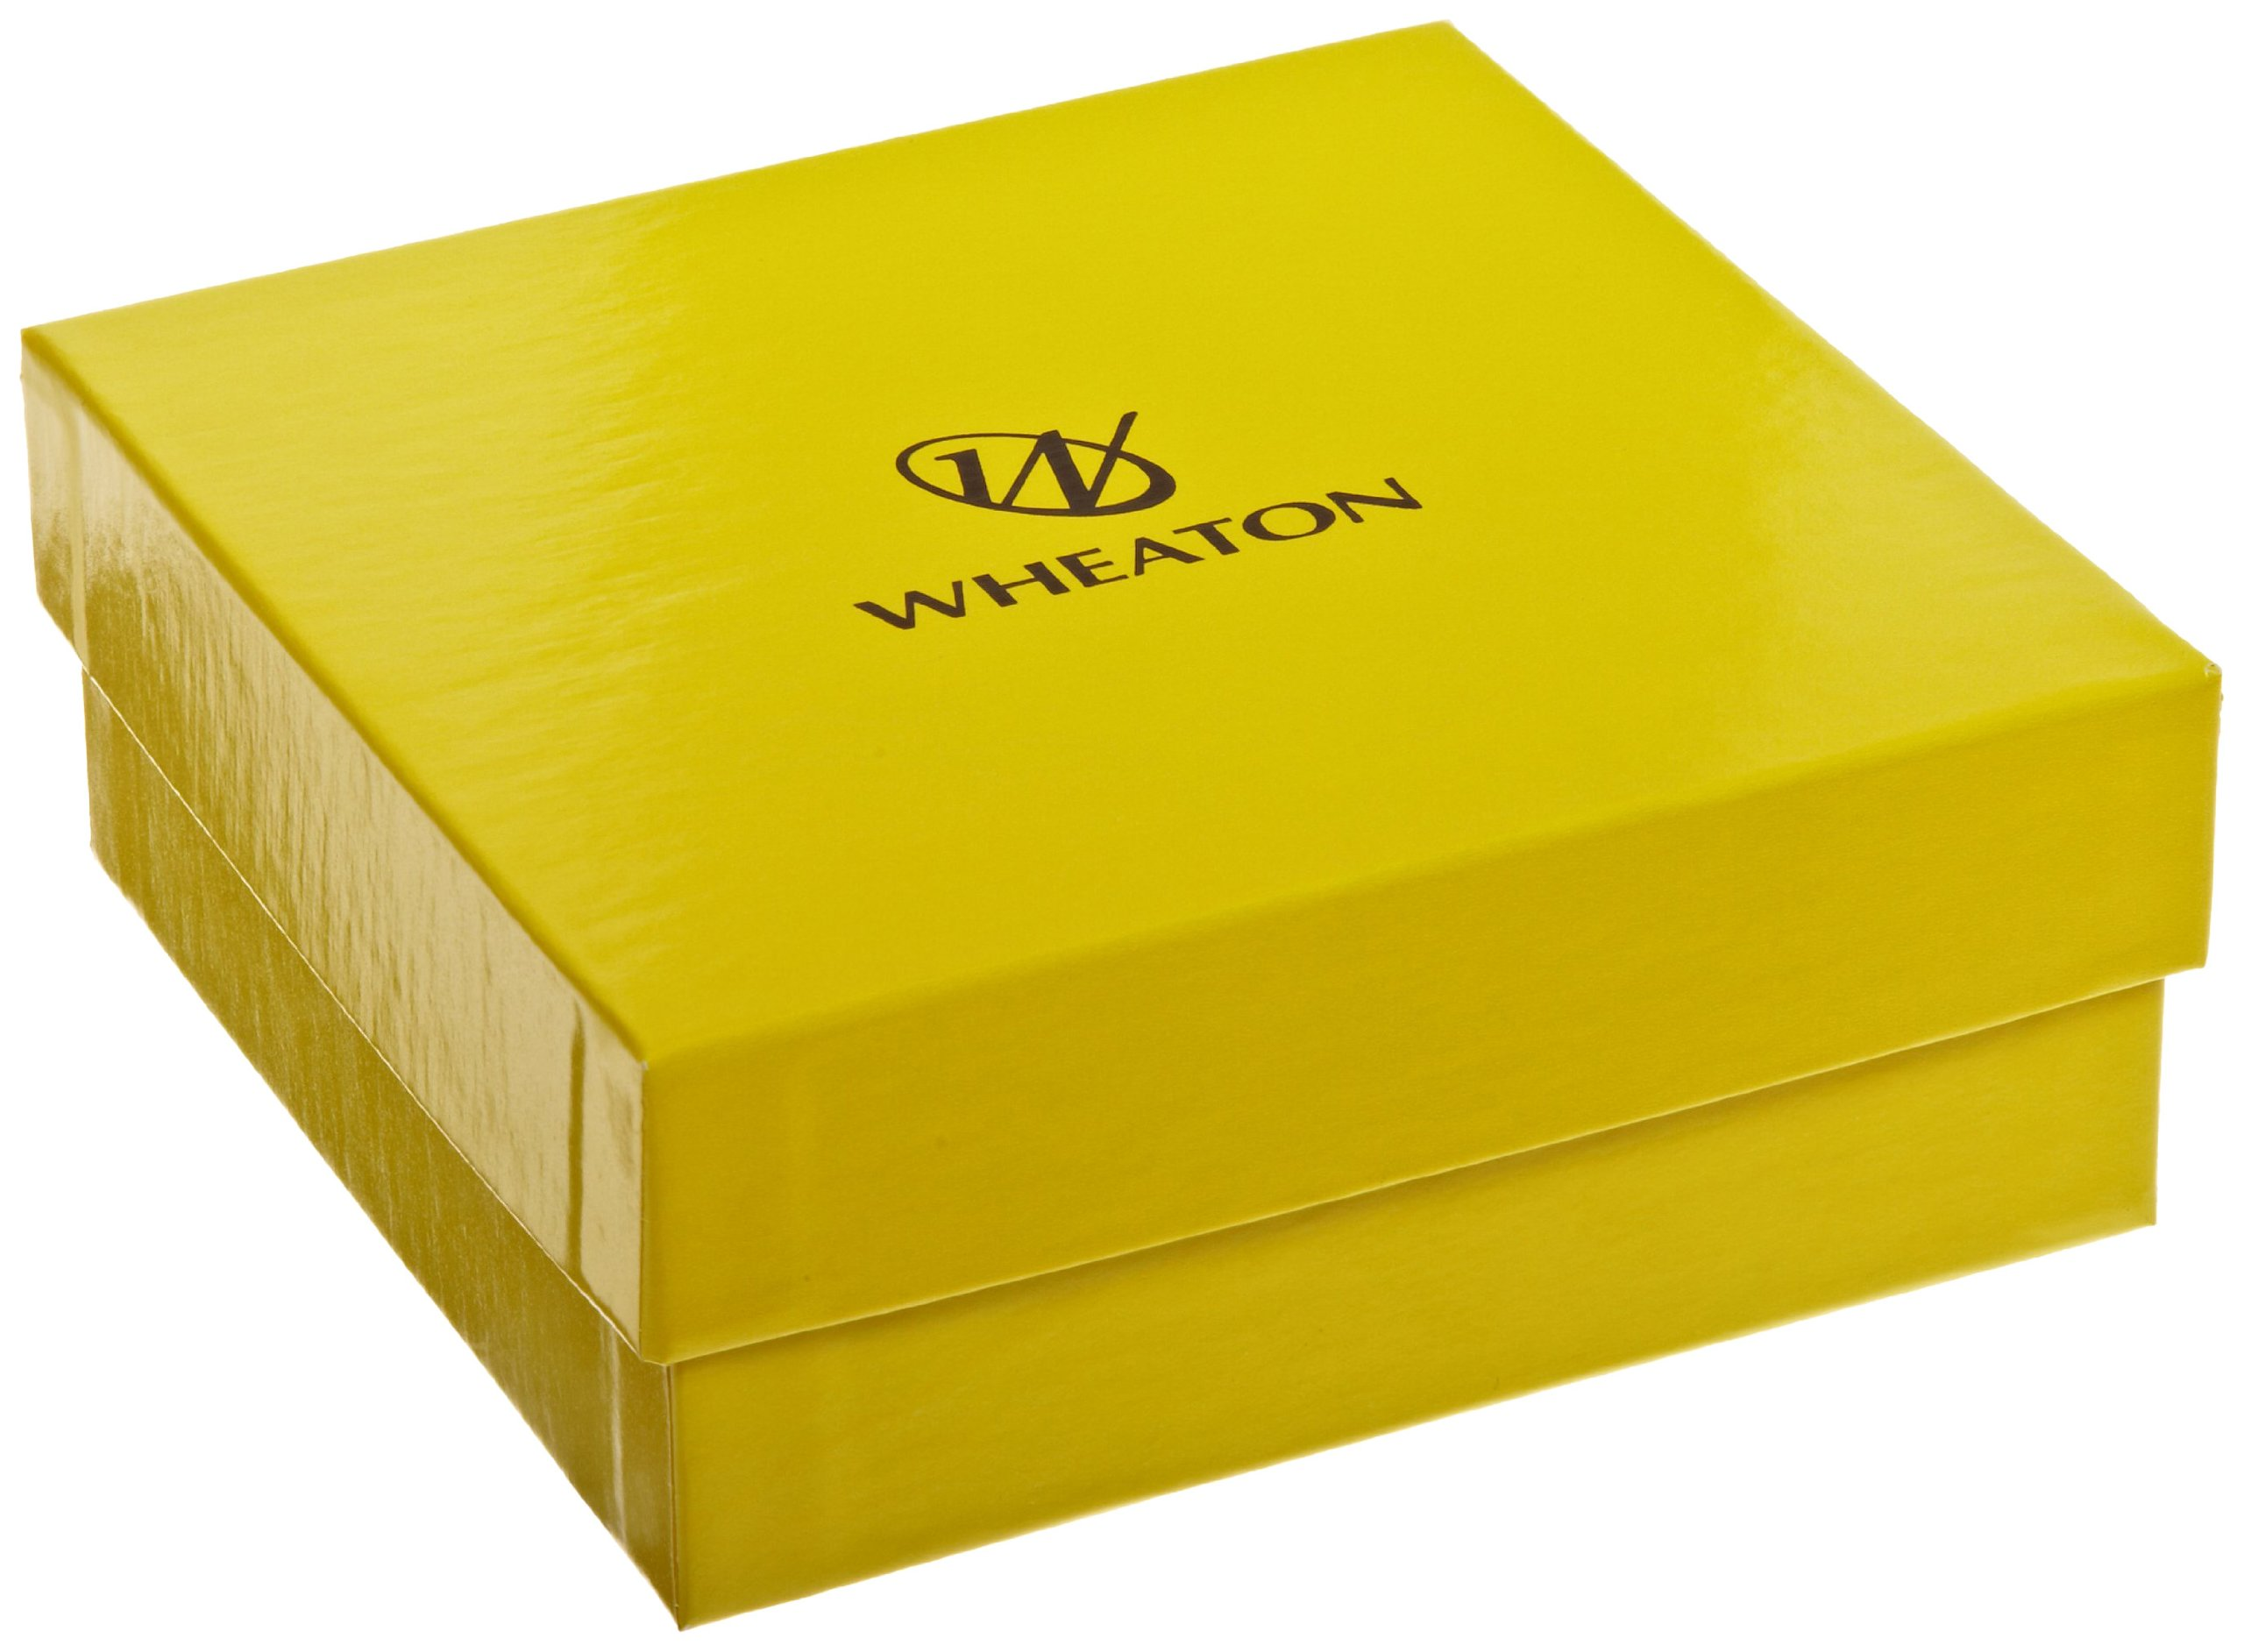 Wheaton W651601 Yellow Chipboard CryoFile Storage Box, 130mm Length x 130mm Width x 52mm Height, For 2mL Cryogenic Vials (Case of 15)